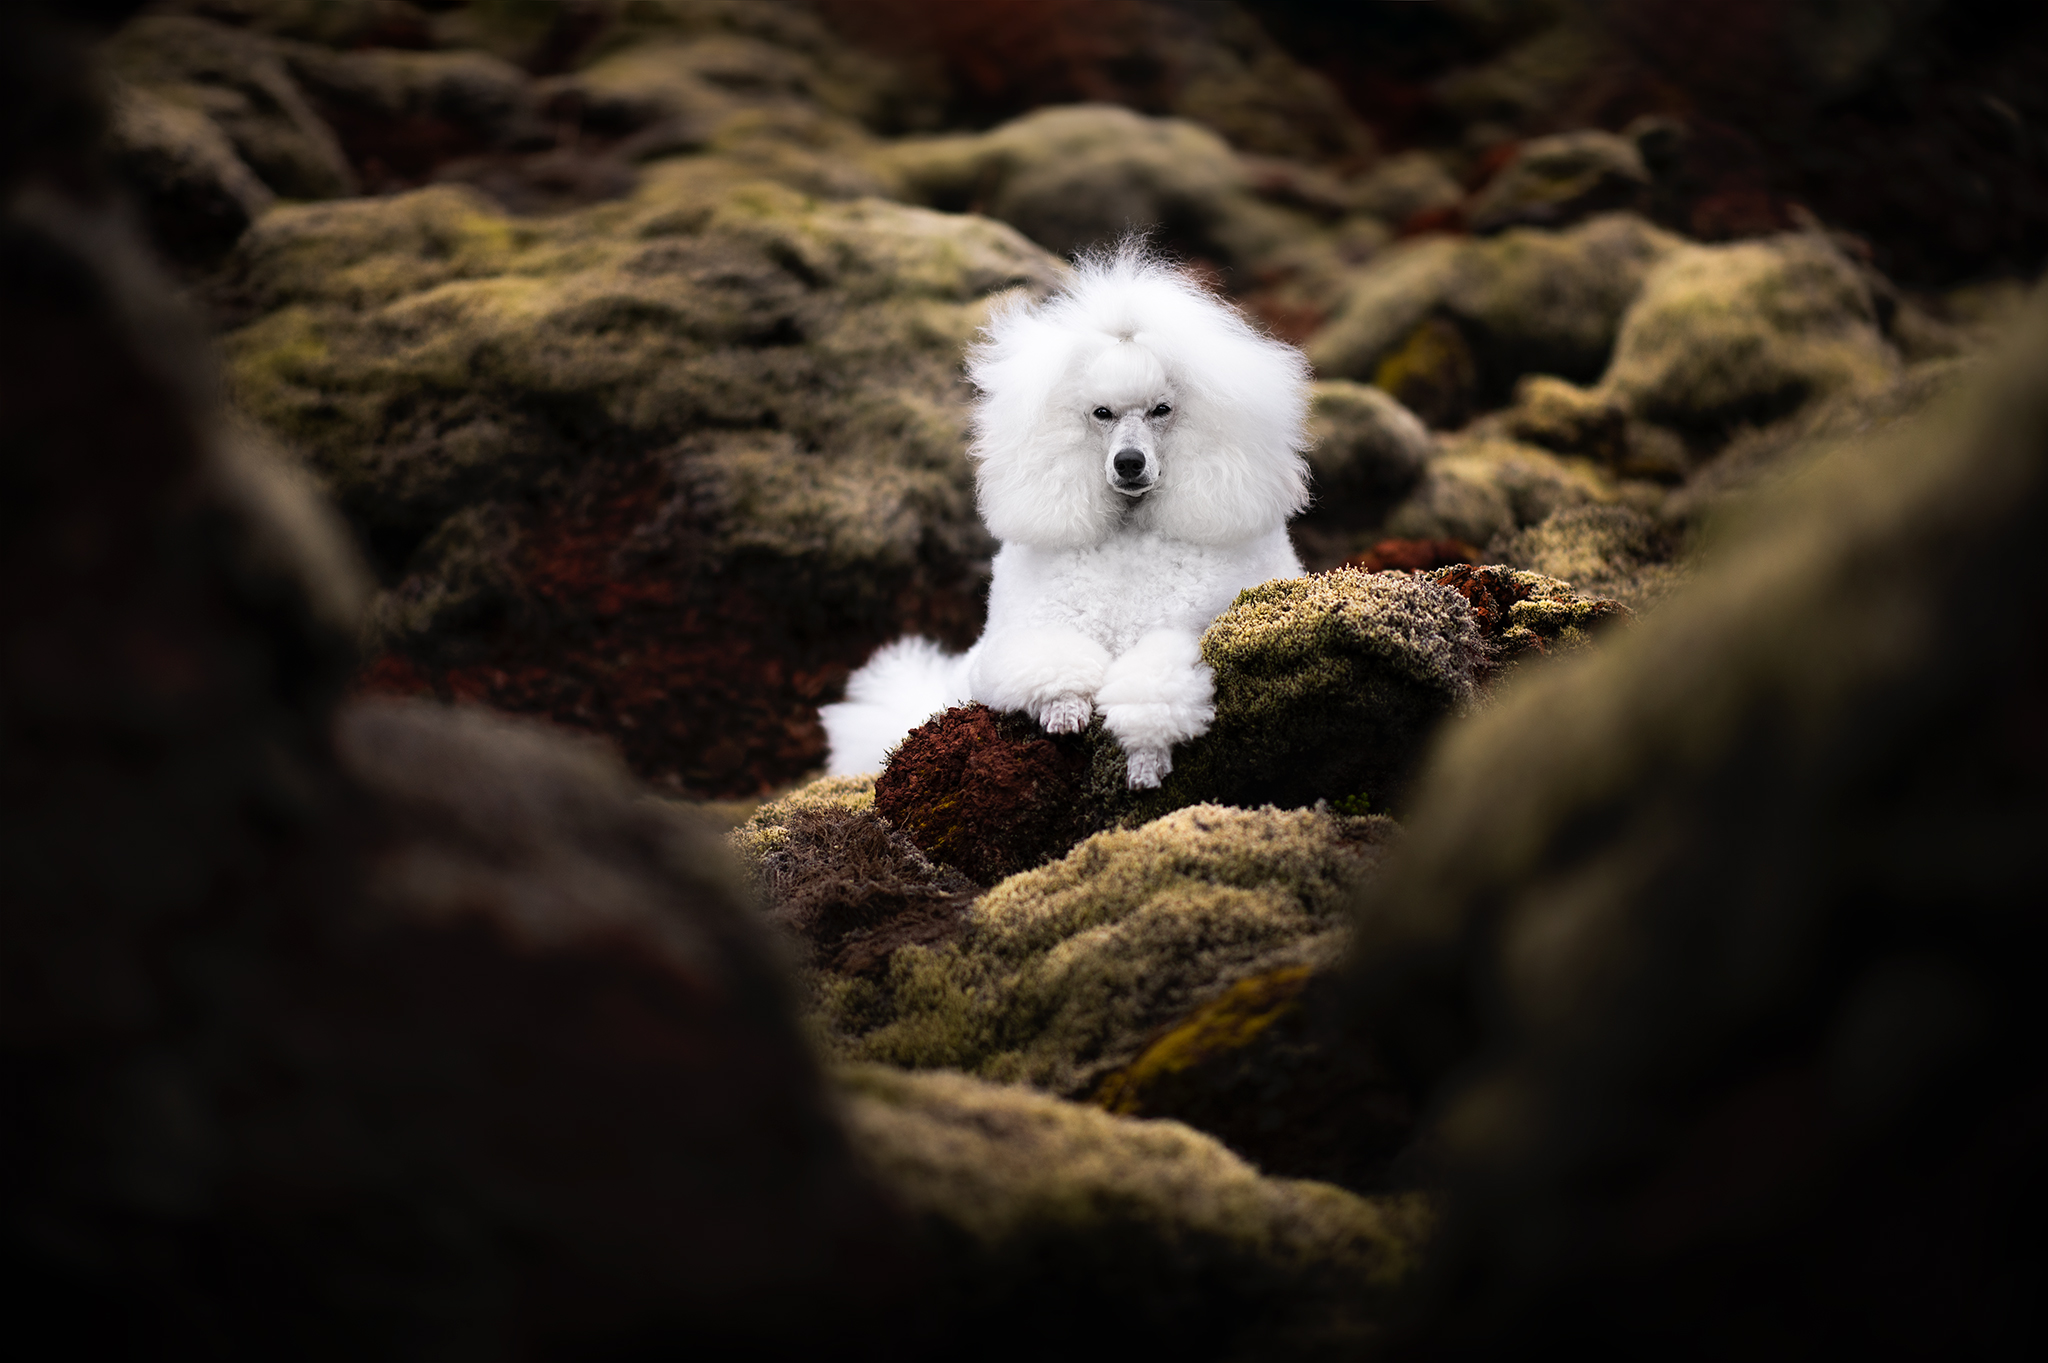 Audrey Bellot Dog Photography Workshop Portraits of Dogs and Art